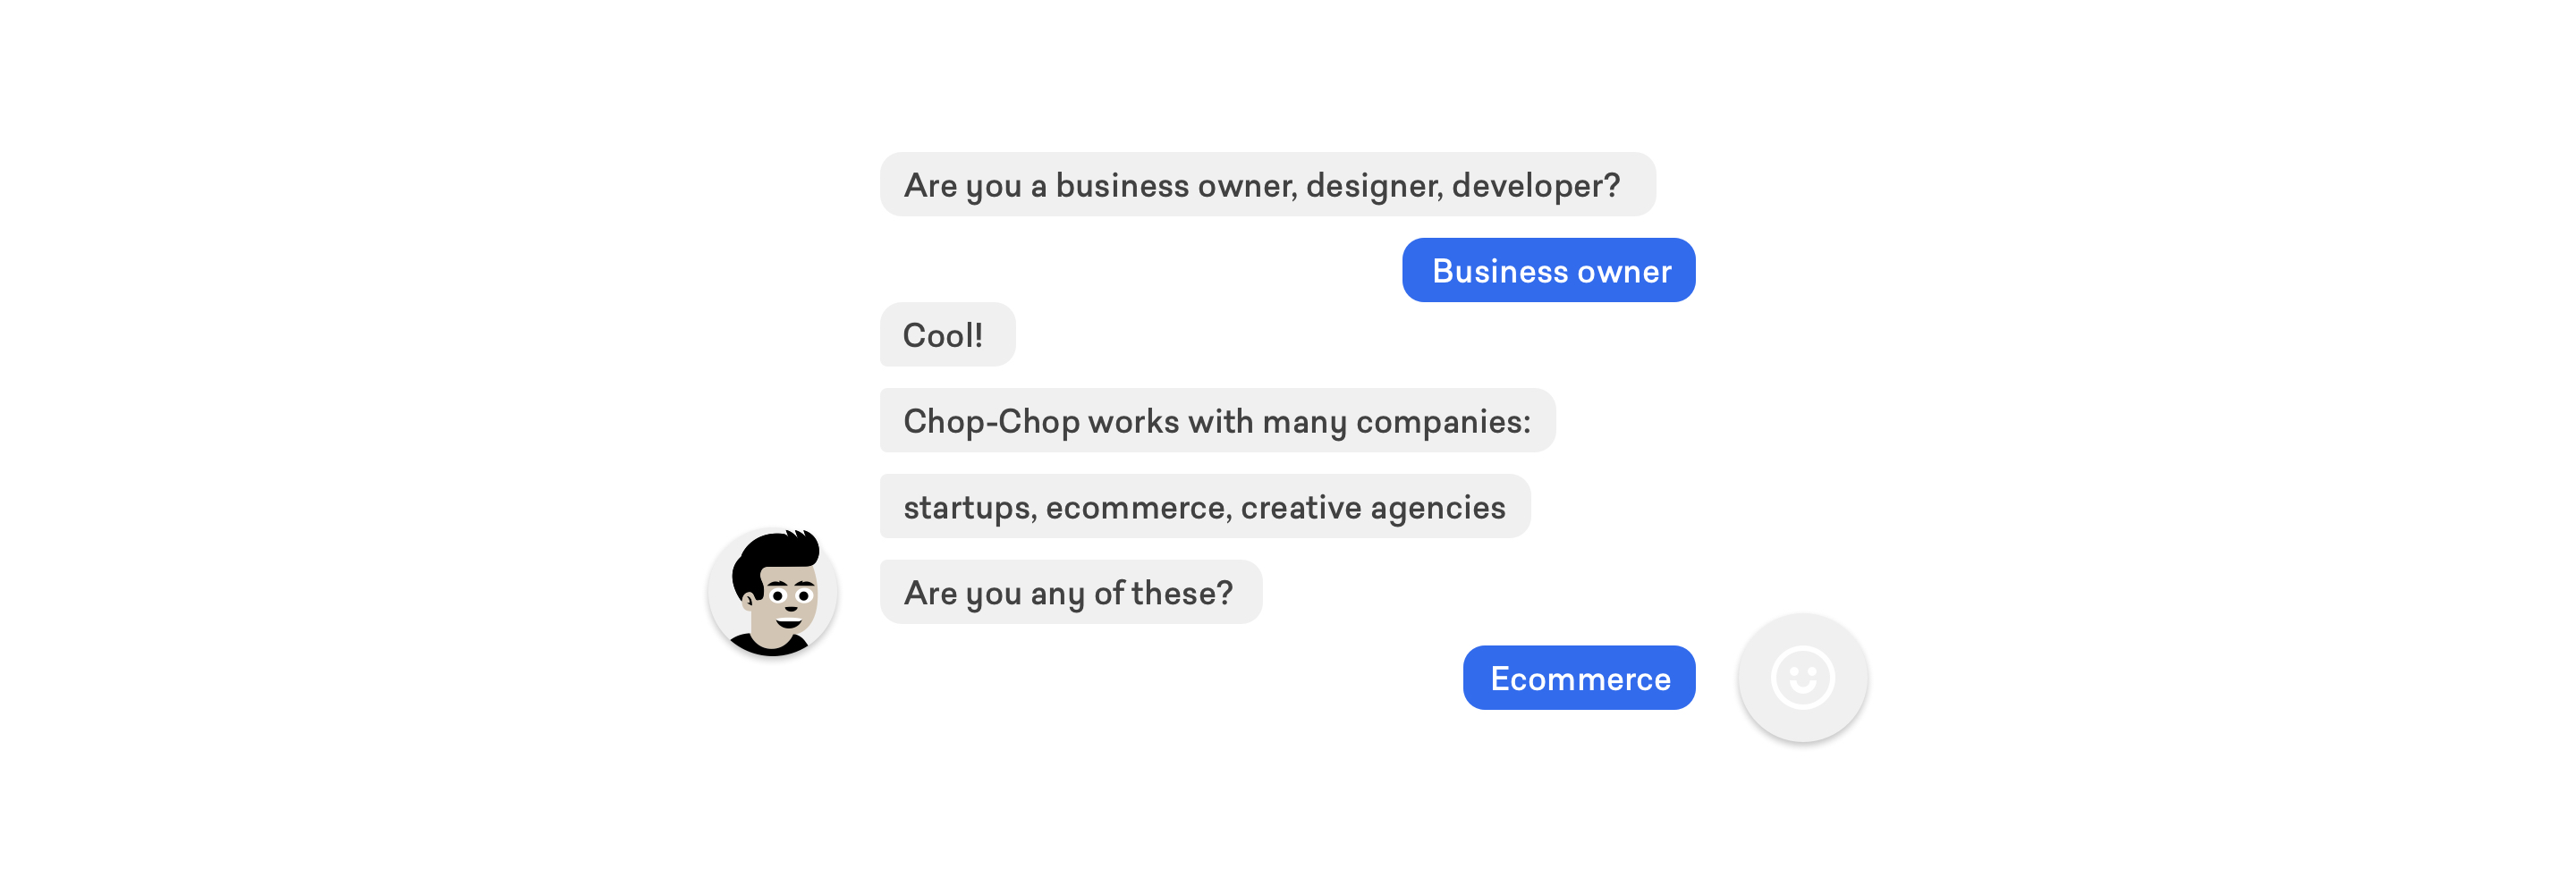 Chatbot experience design with complete conversational